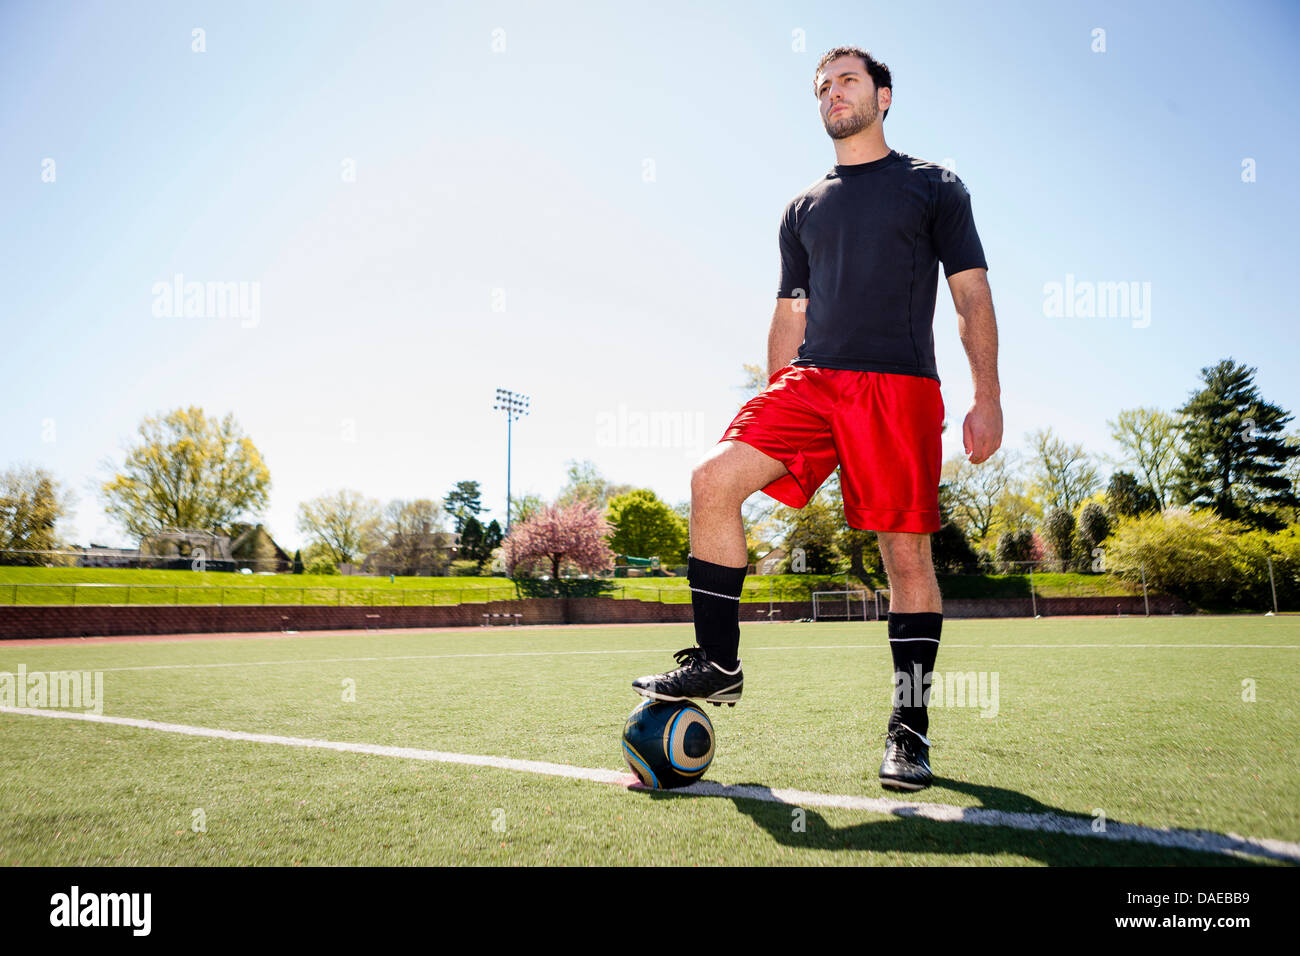 Soccer player preparing for free kick - Stock Image